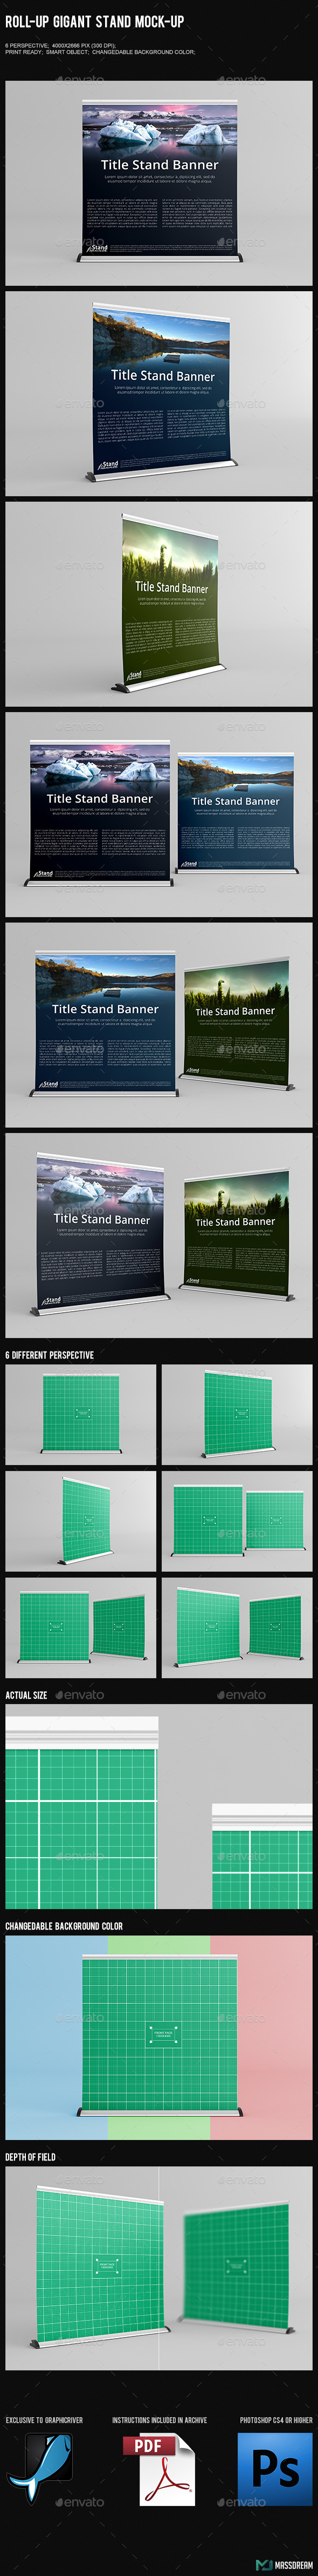 Roll-Up Gigant Stand Mock-Up